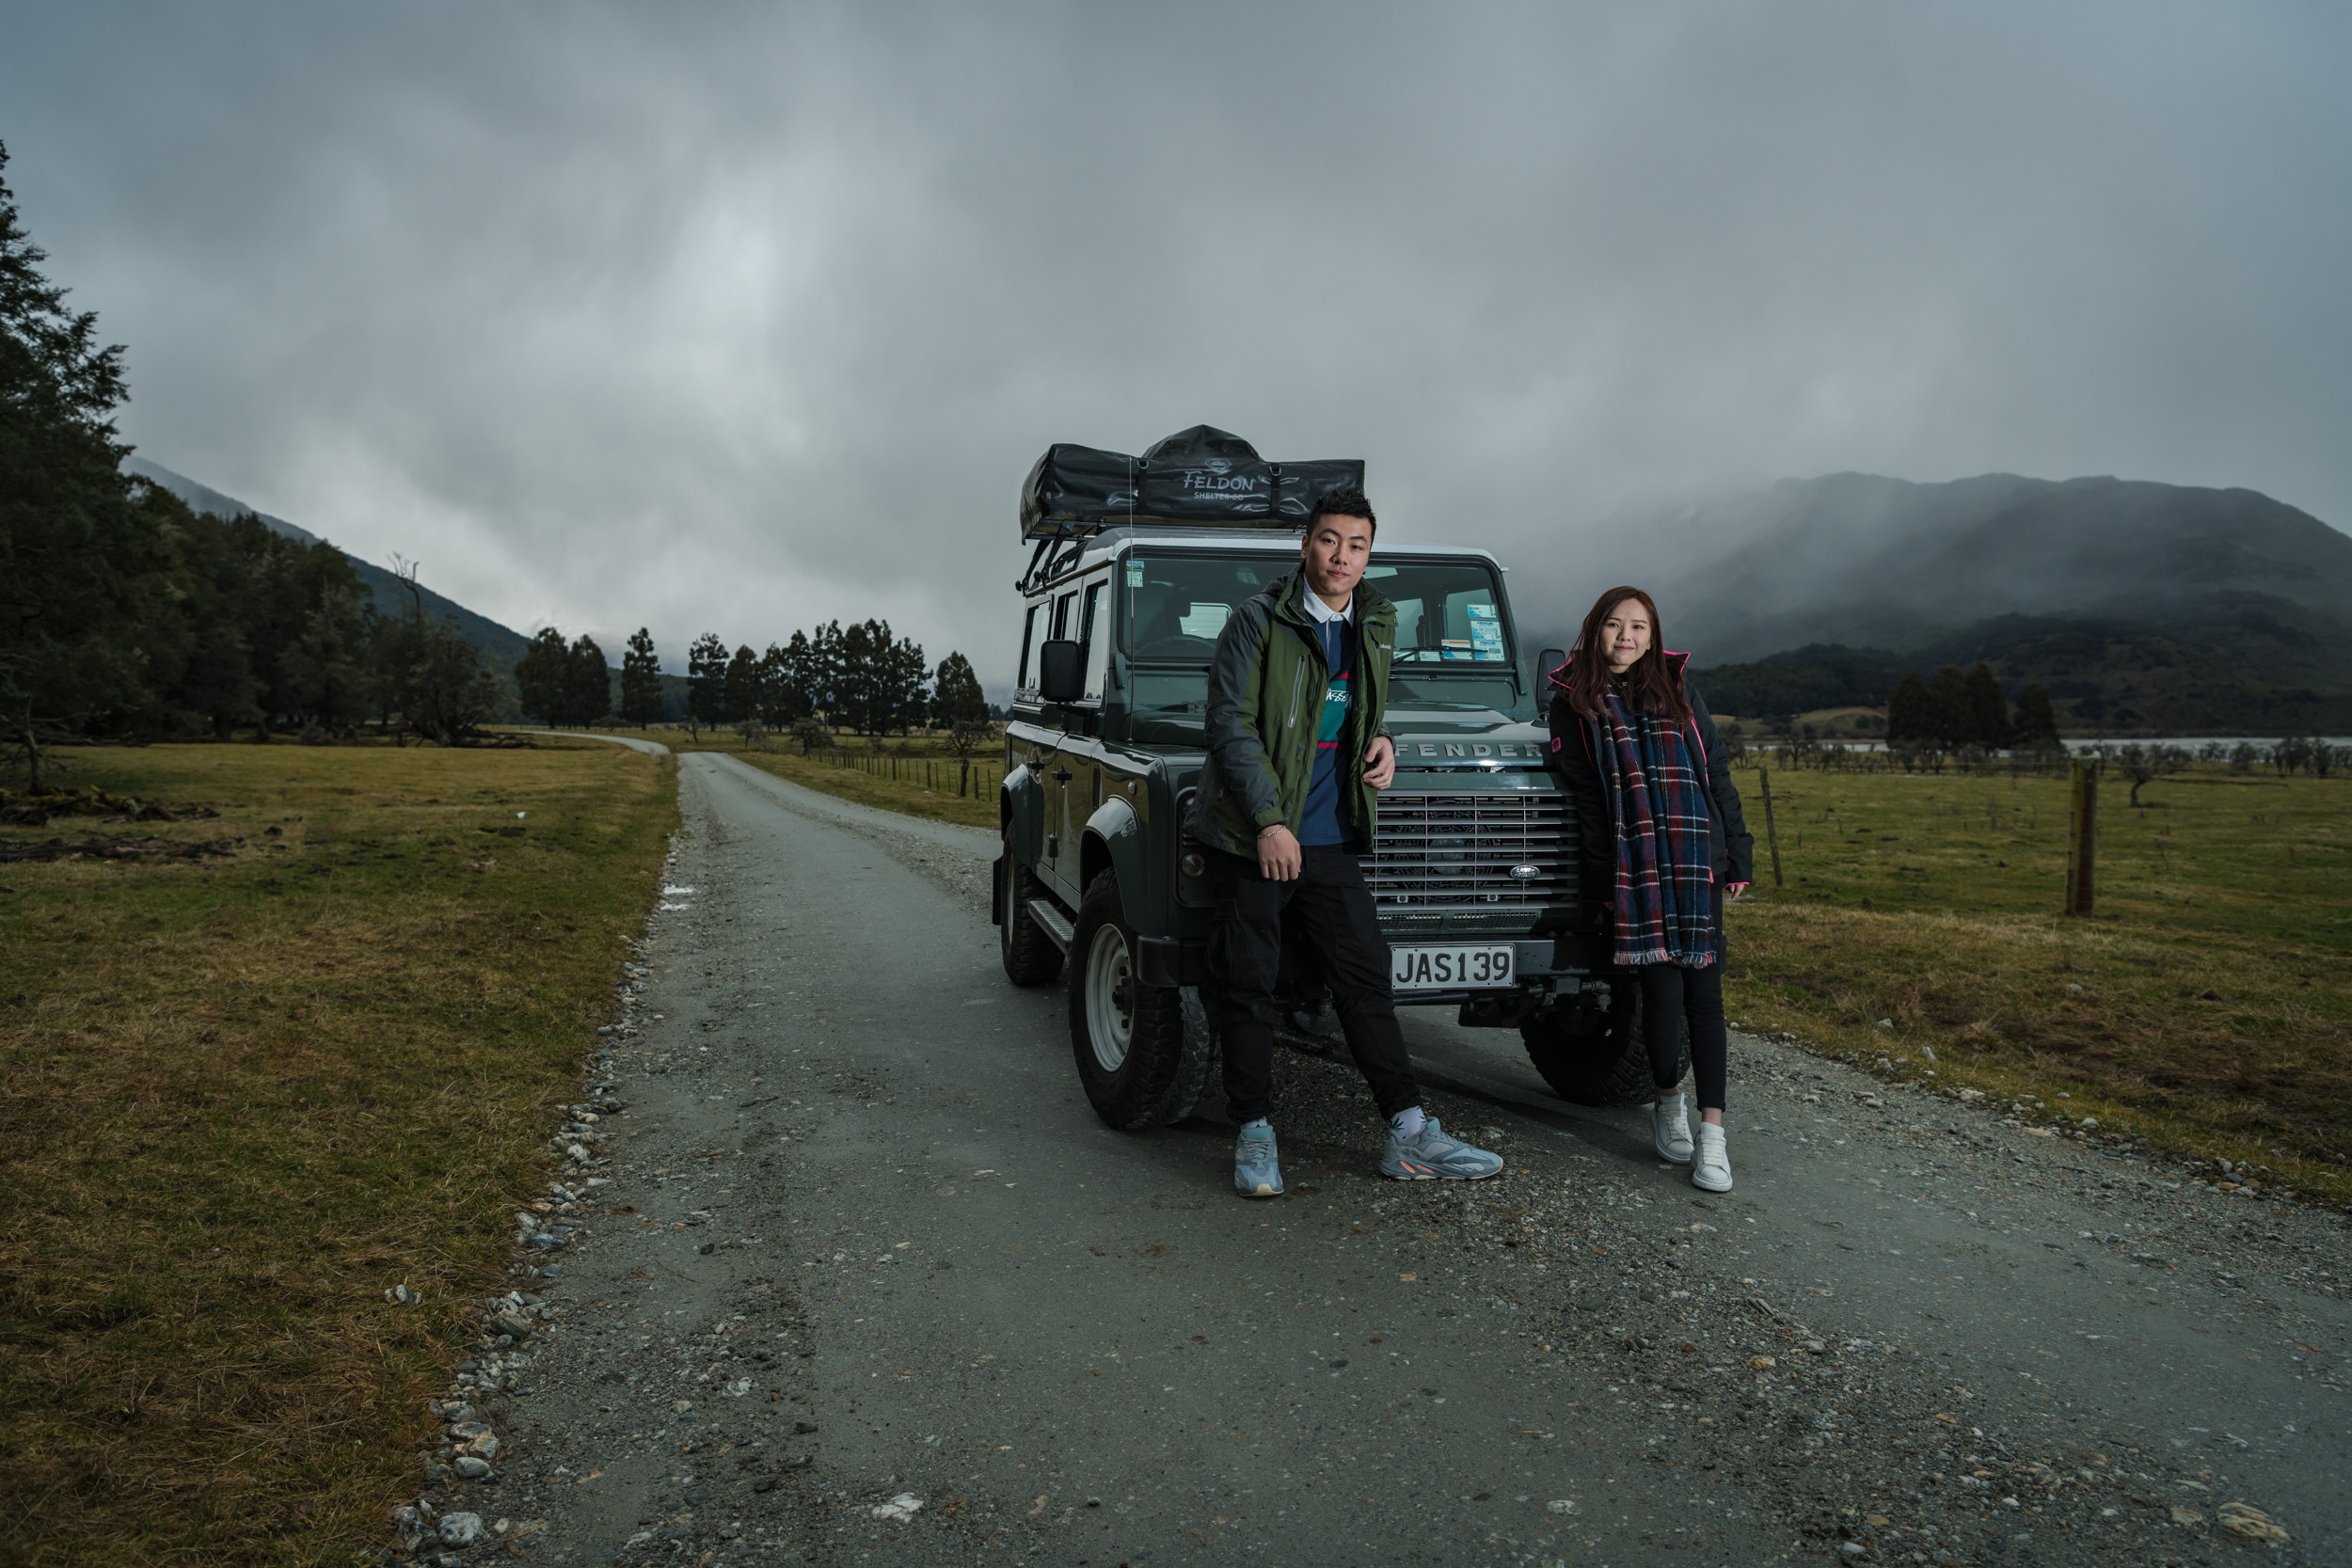 Our 2015 Land Rover Defender is perfect for driving around New Zealand's Backcountry Roads - It's an NZTA Passenger Certified Vehicle and both of us are Licensed Passenger Drivers